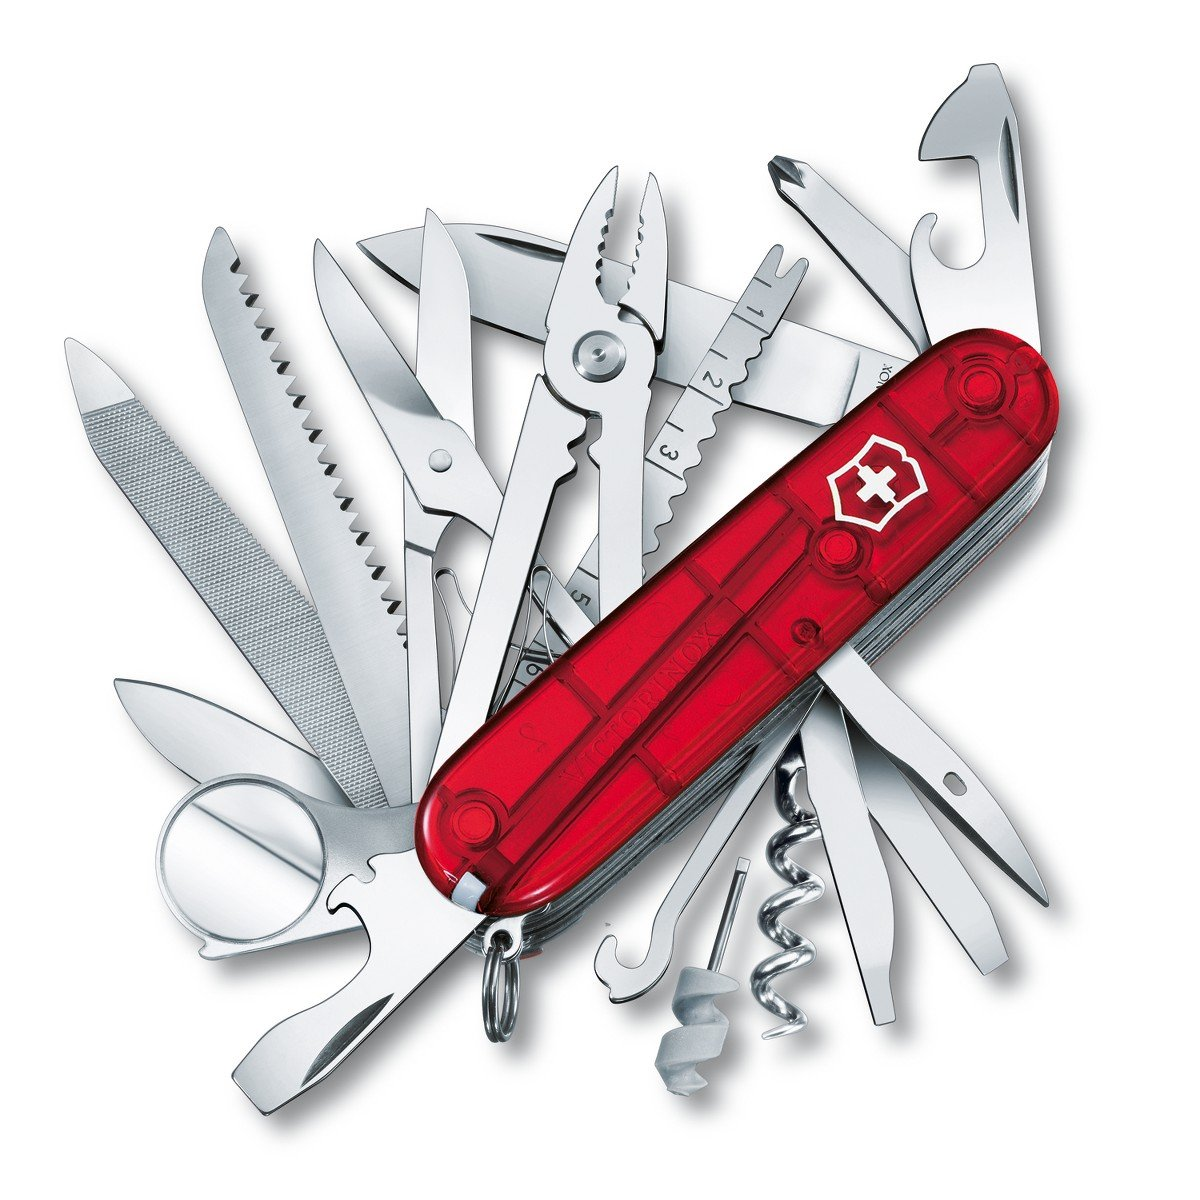 Victorinox Swiss Army Multi-Tool, SwissChamp Pocket Knife, Ruby by Victorinox